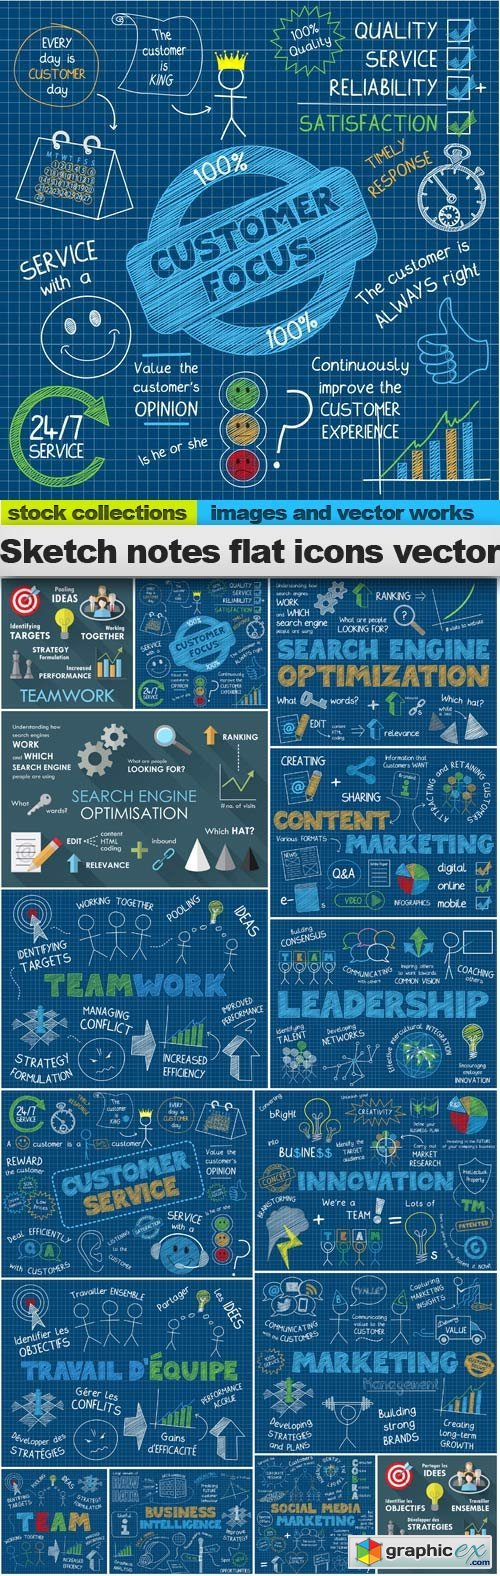 Sketch notes flat icons vector, 15 x EPS